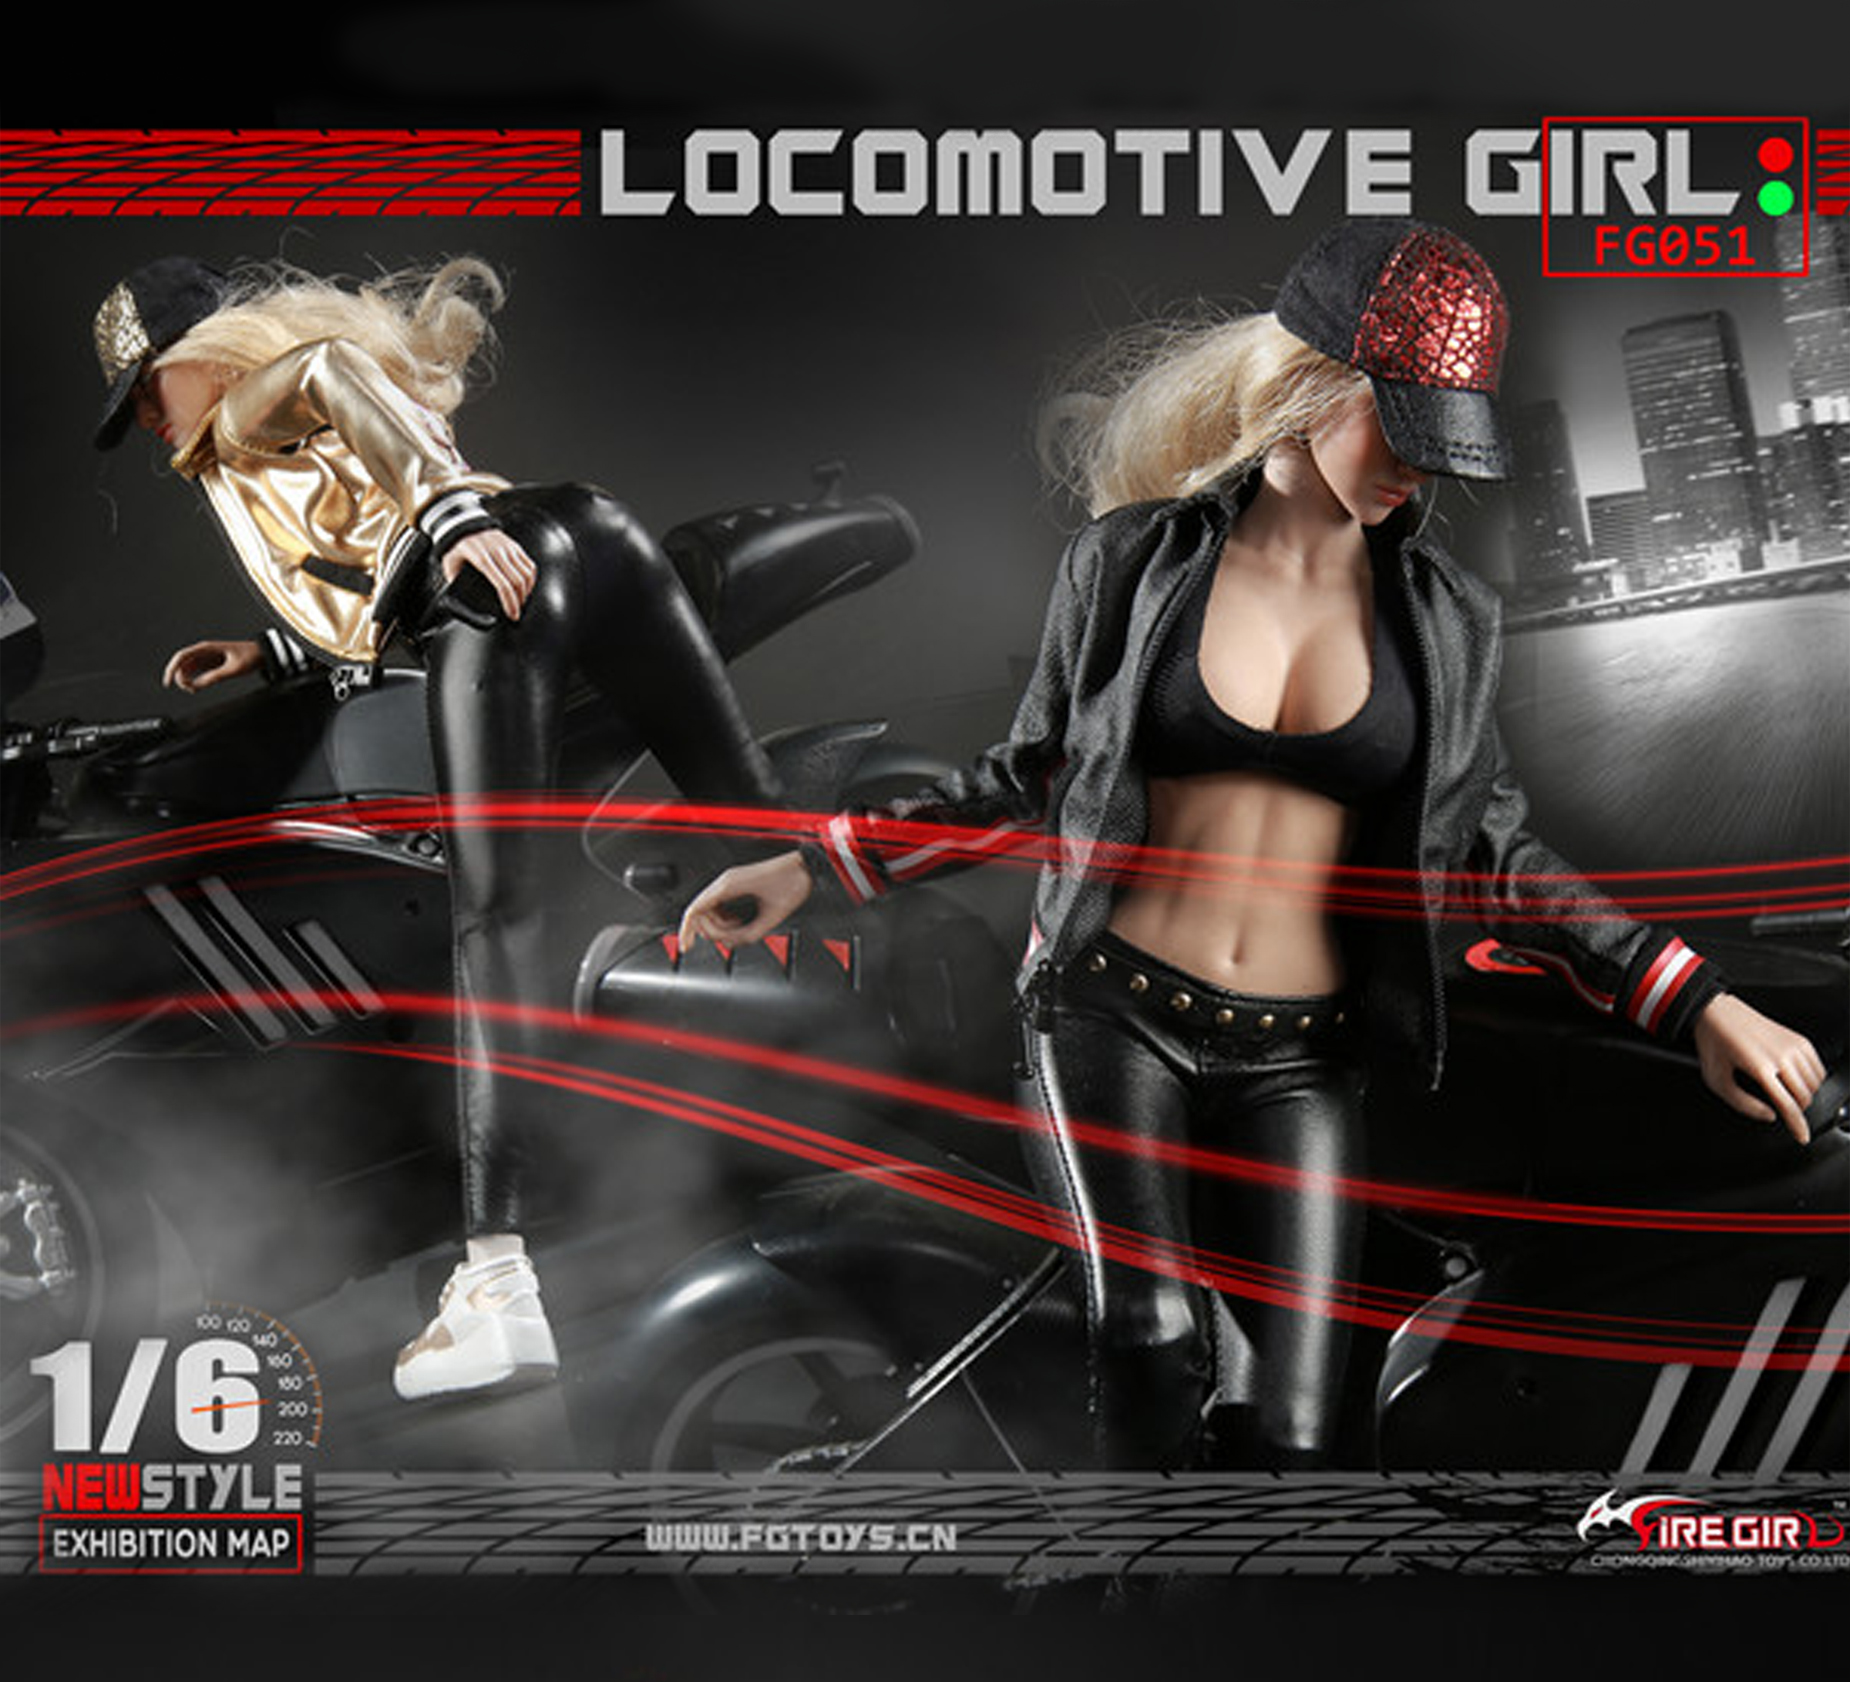 Fire Girl Toys FG051 Trend locomotive girl leather suit